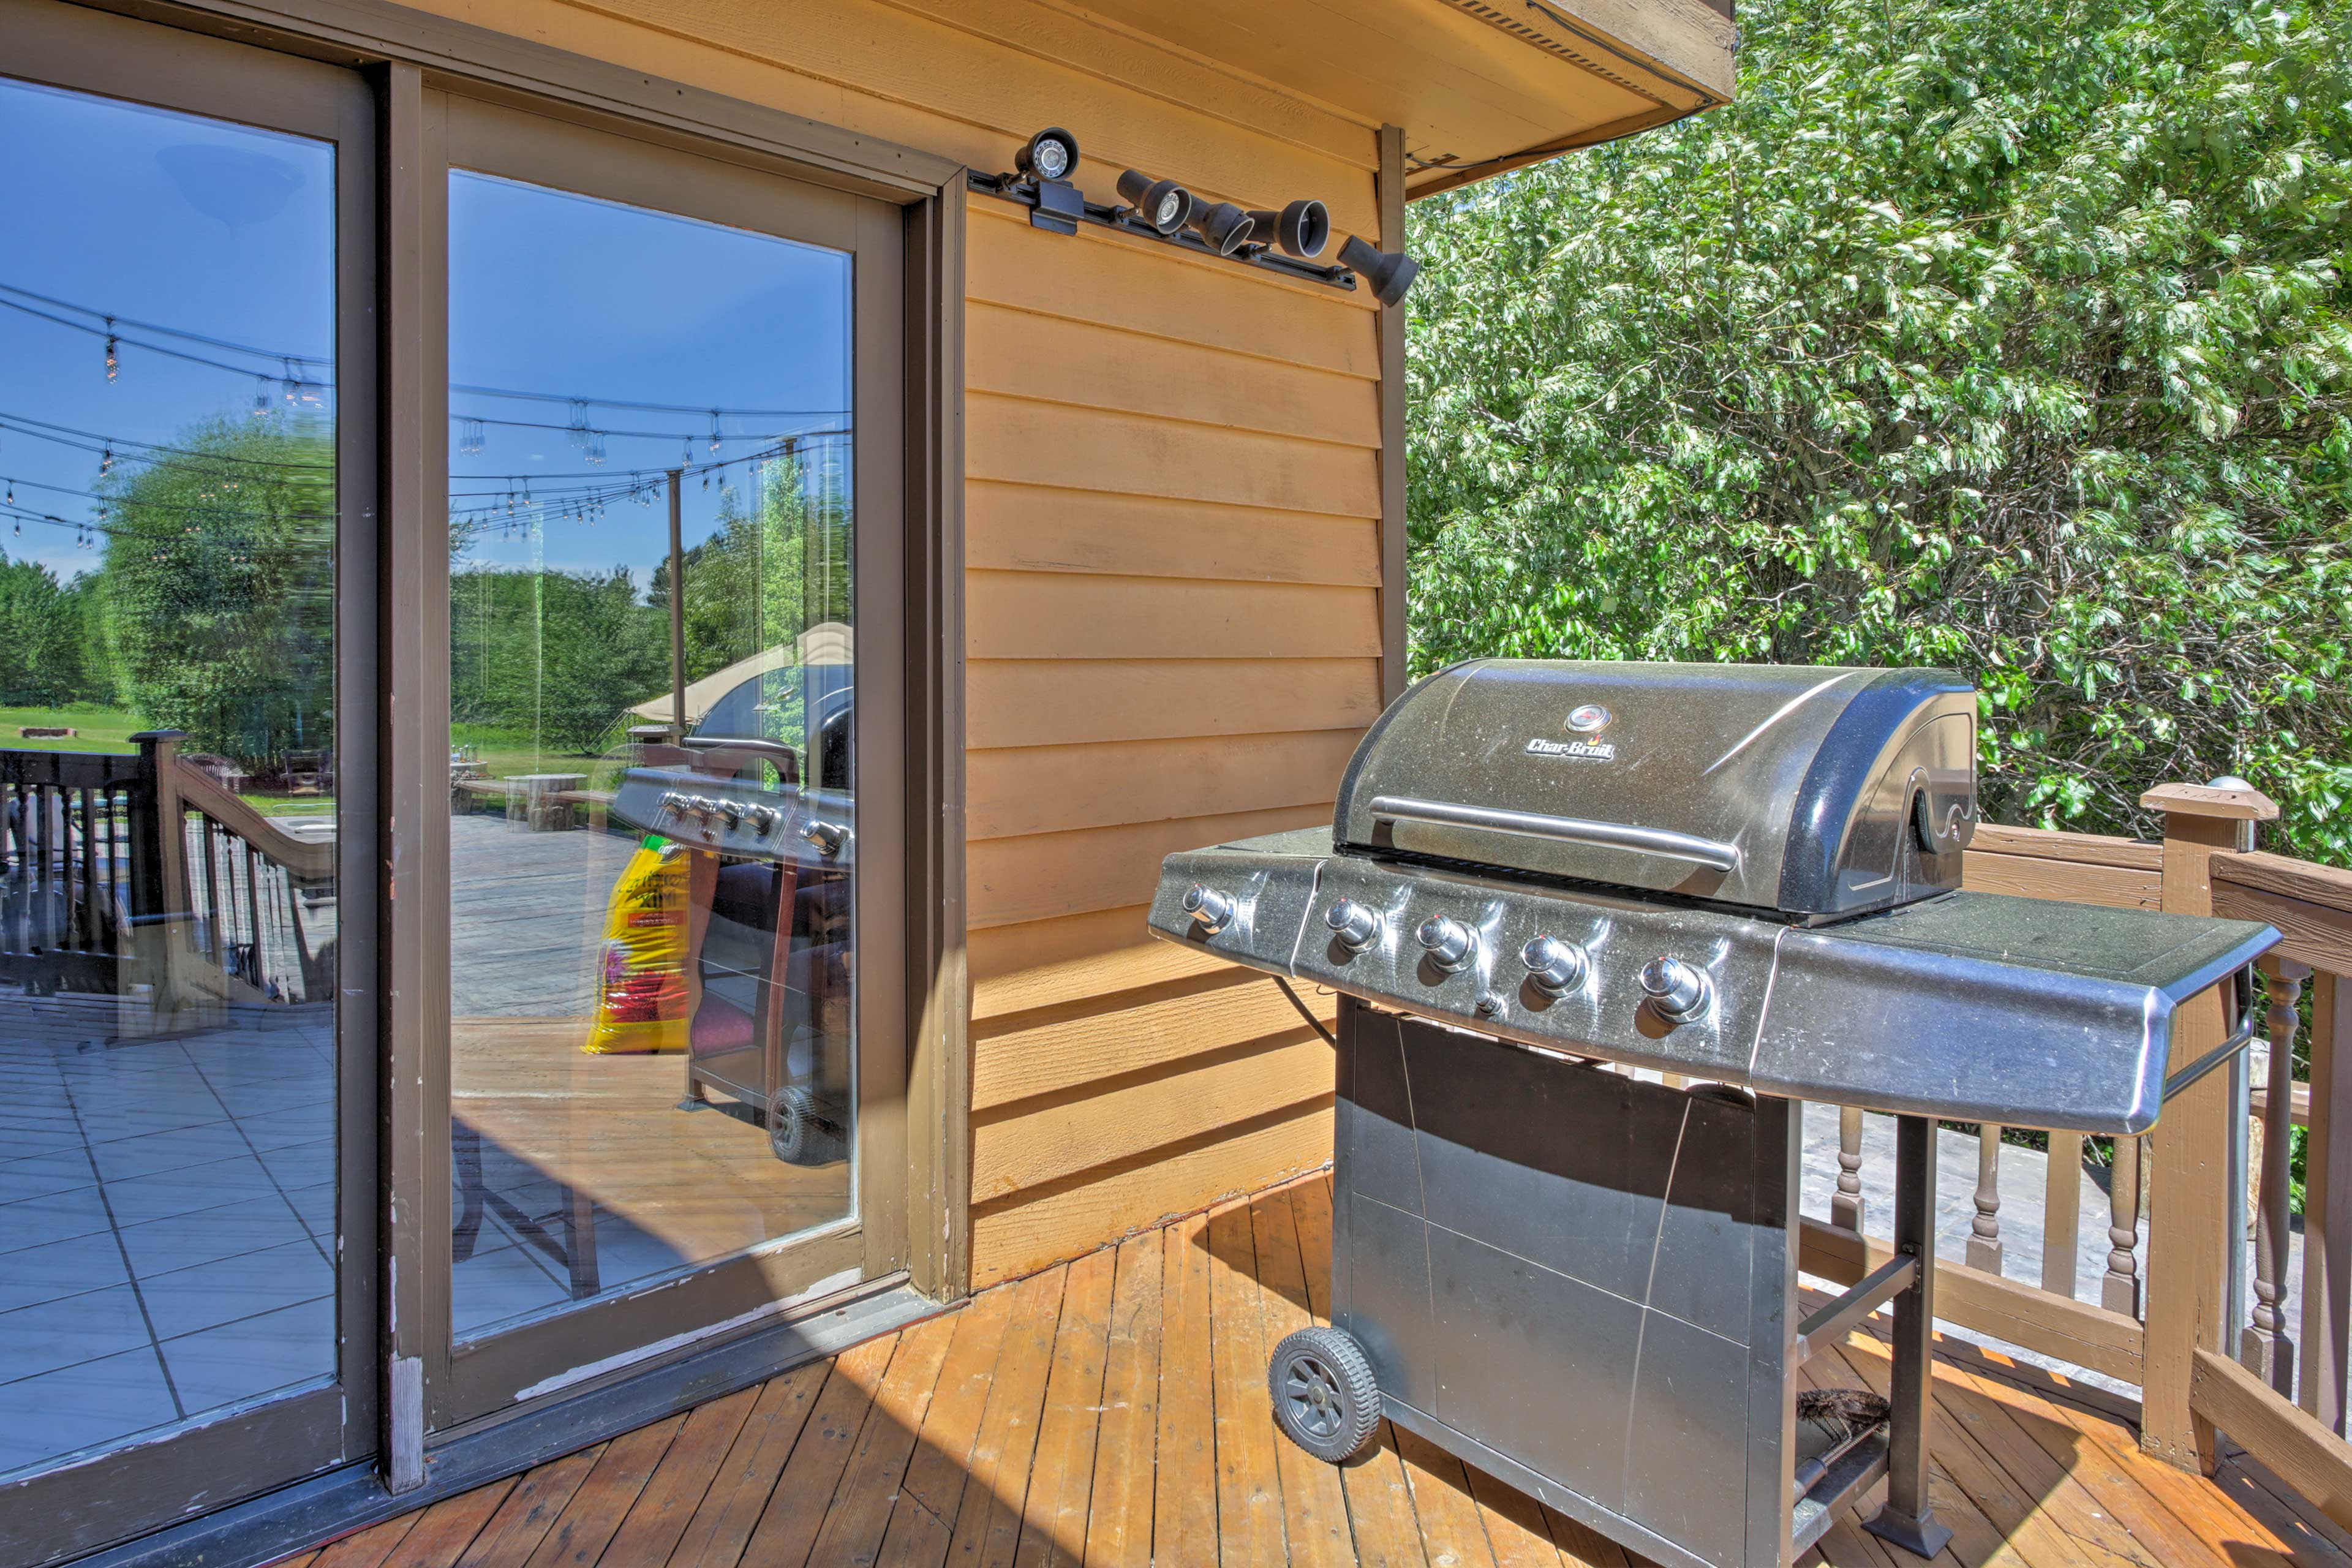 The property also has a gas grill out on the spacious back deck.